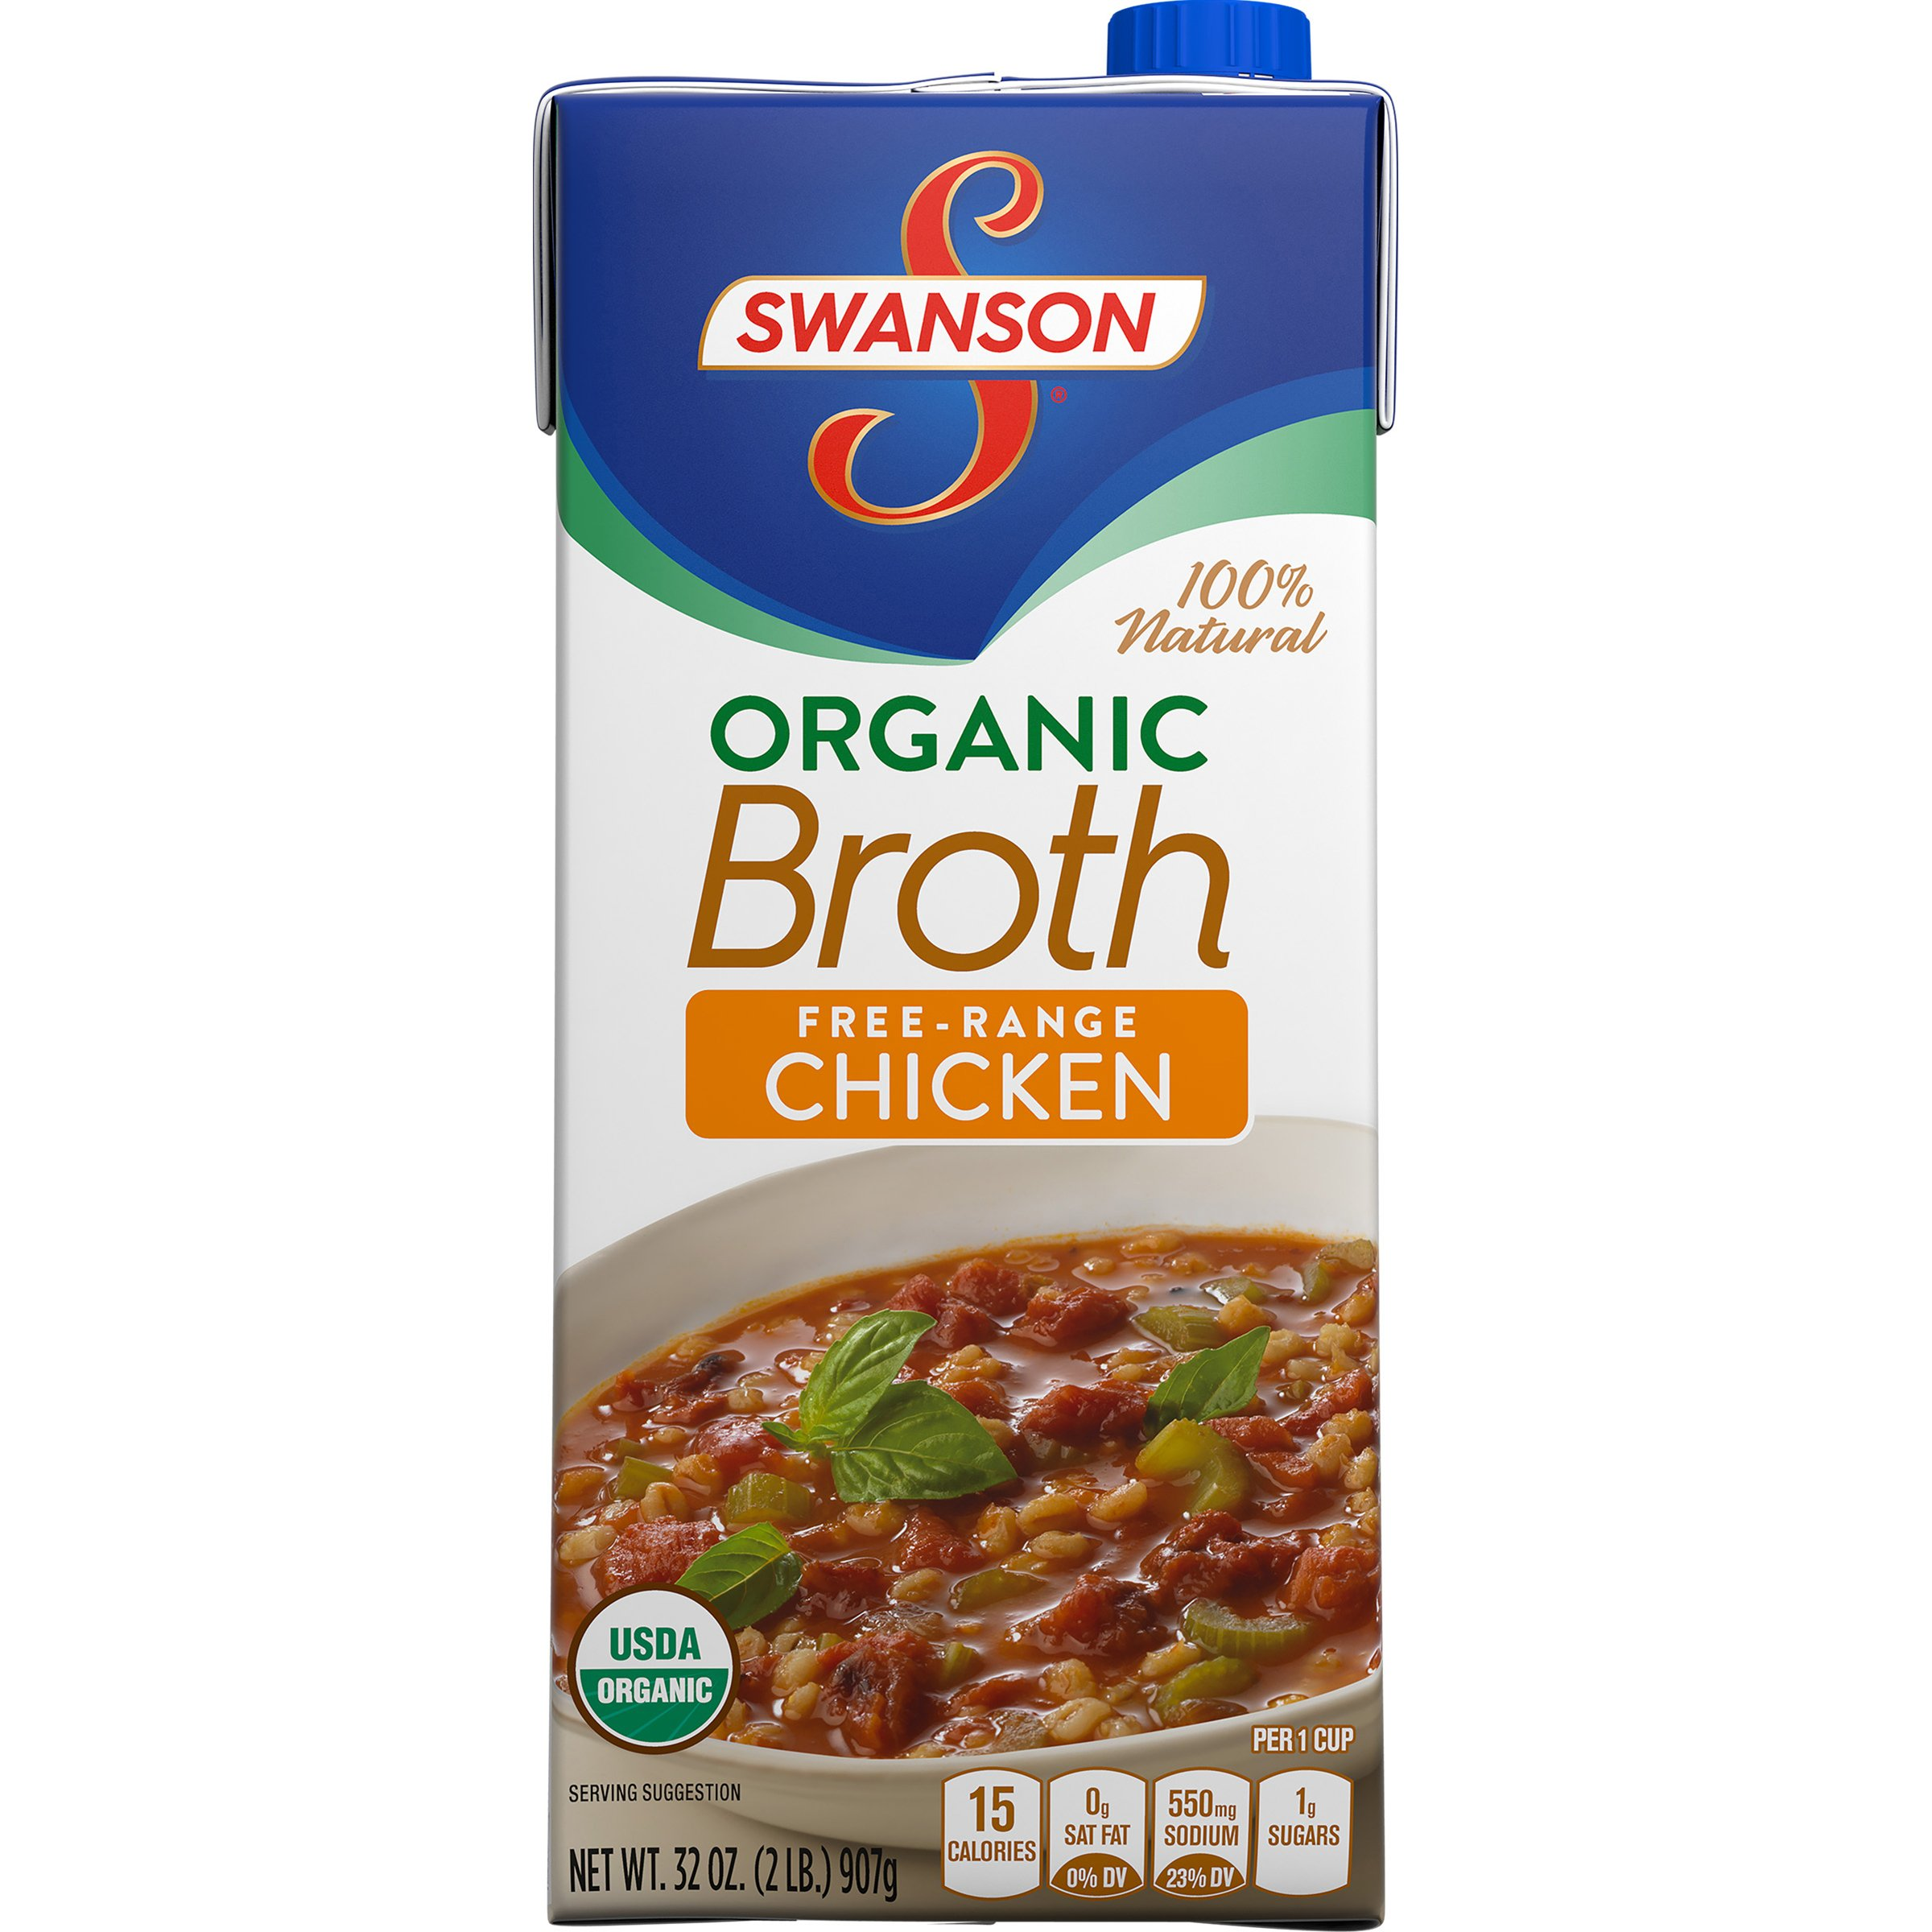 Swanson Organic Free-Range Chicken Broth, 32 oz.